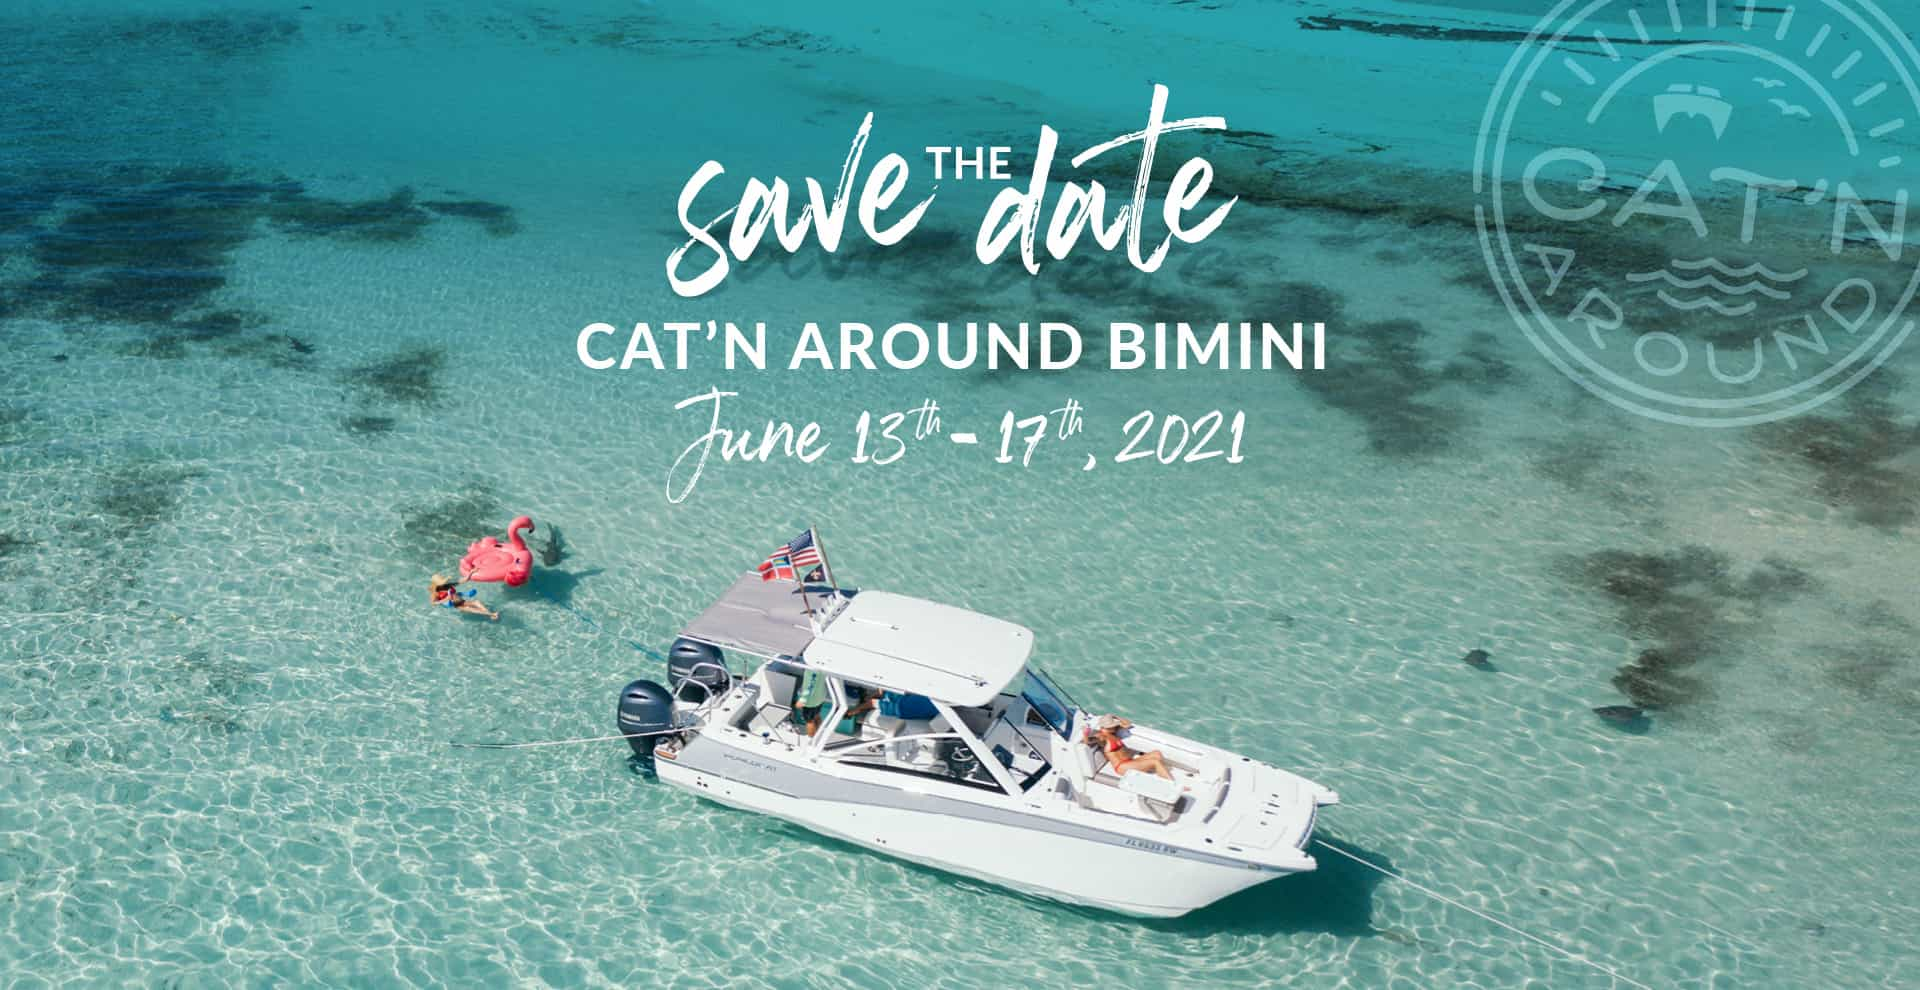 Cat'n Around Bimini